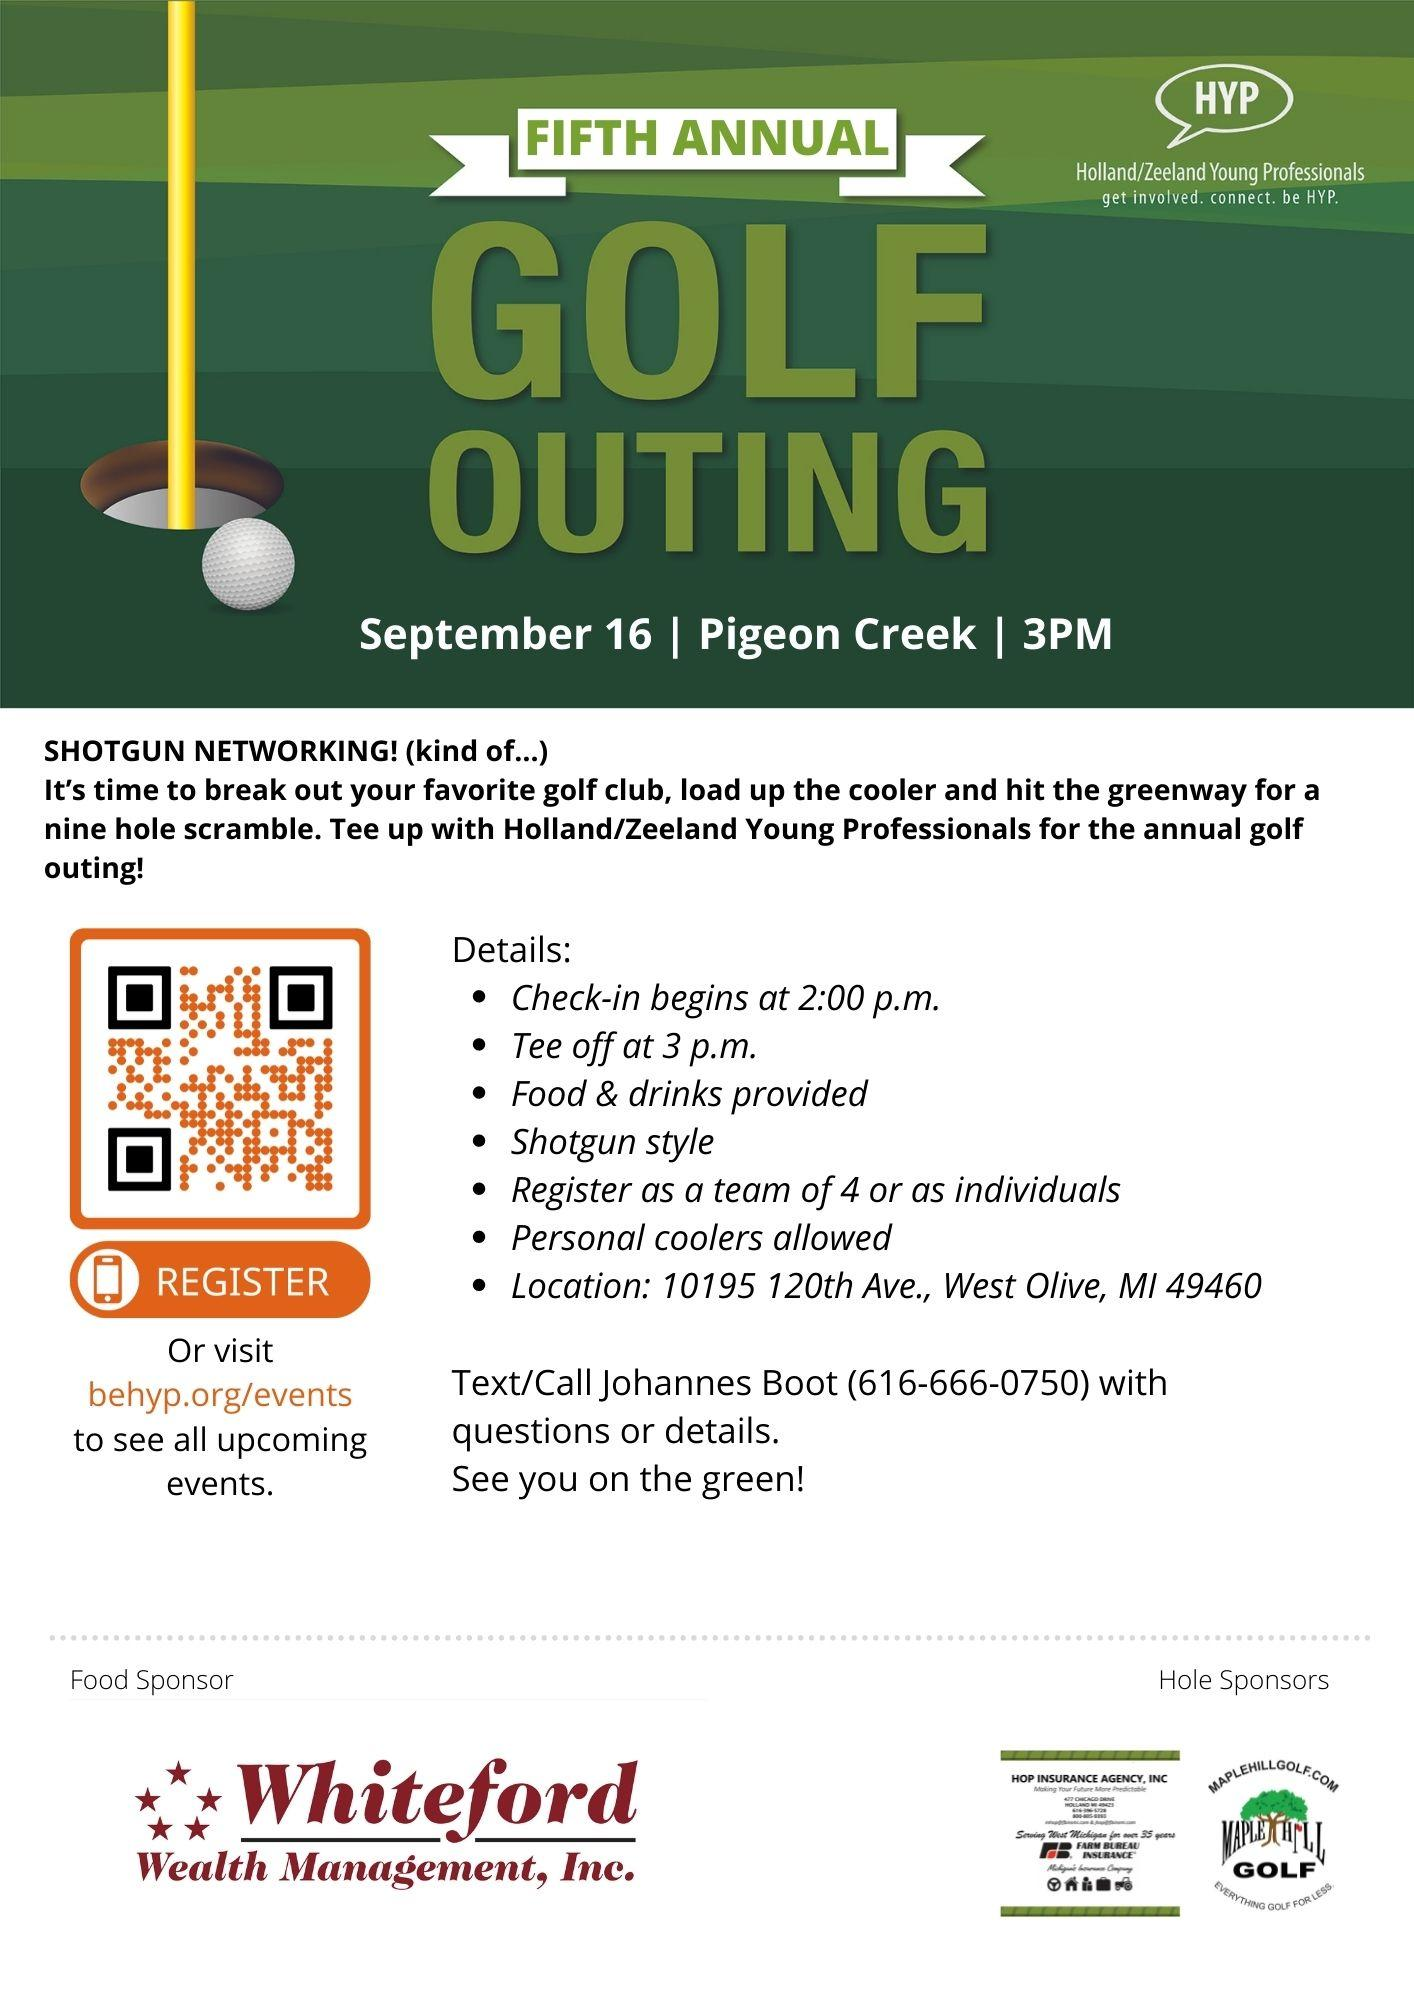 HYP Annual Golf Outing